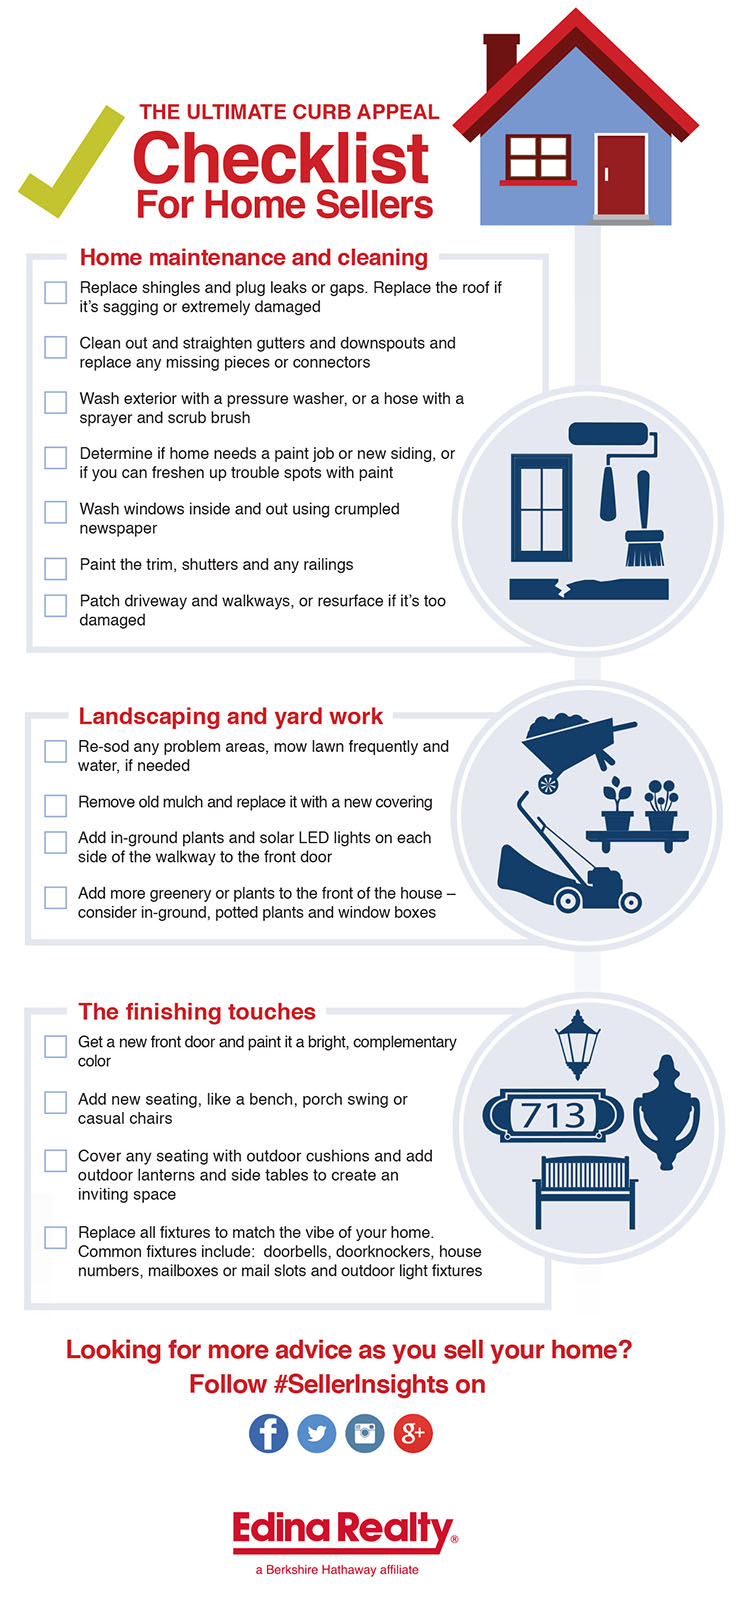 The Ultimate Curb Appeal Checklist For Home Sellers